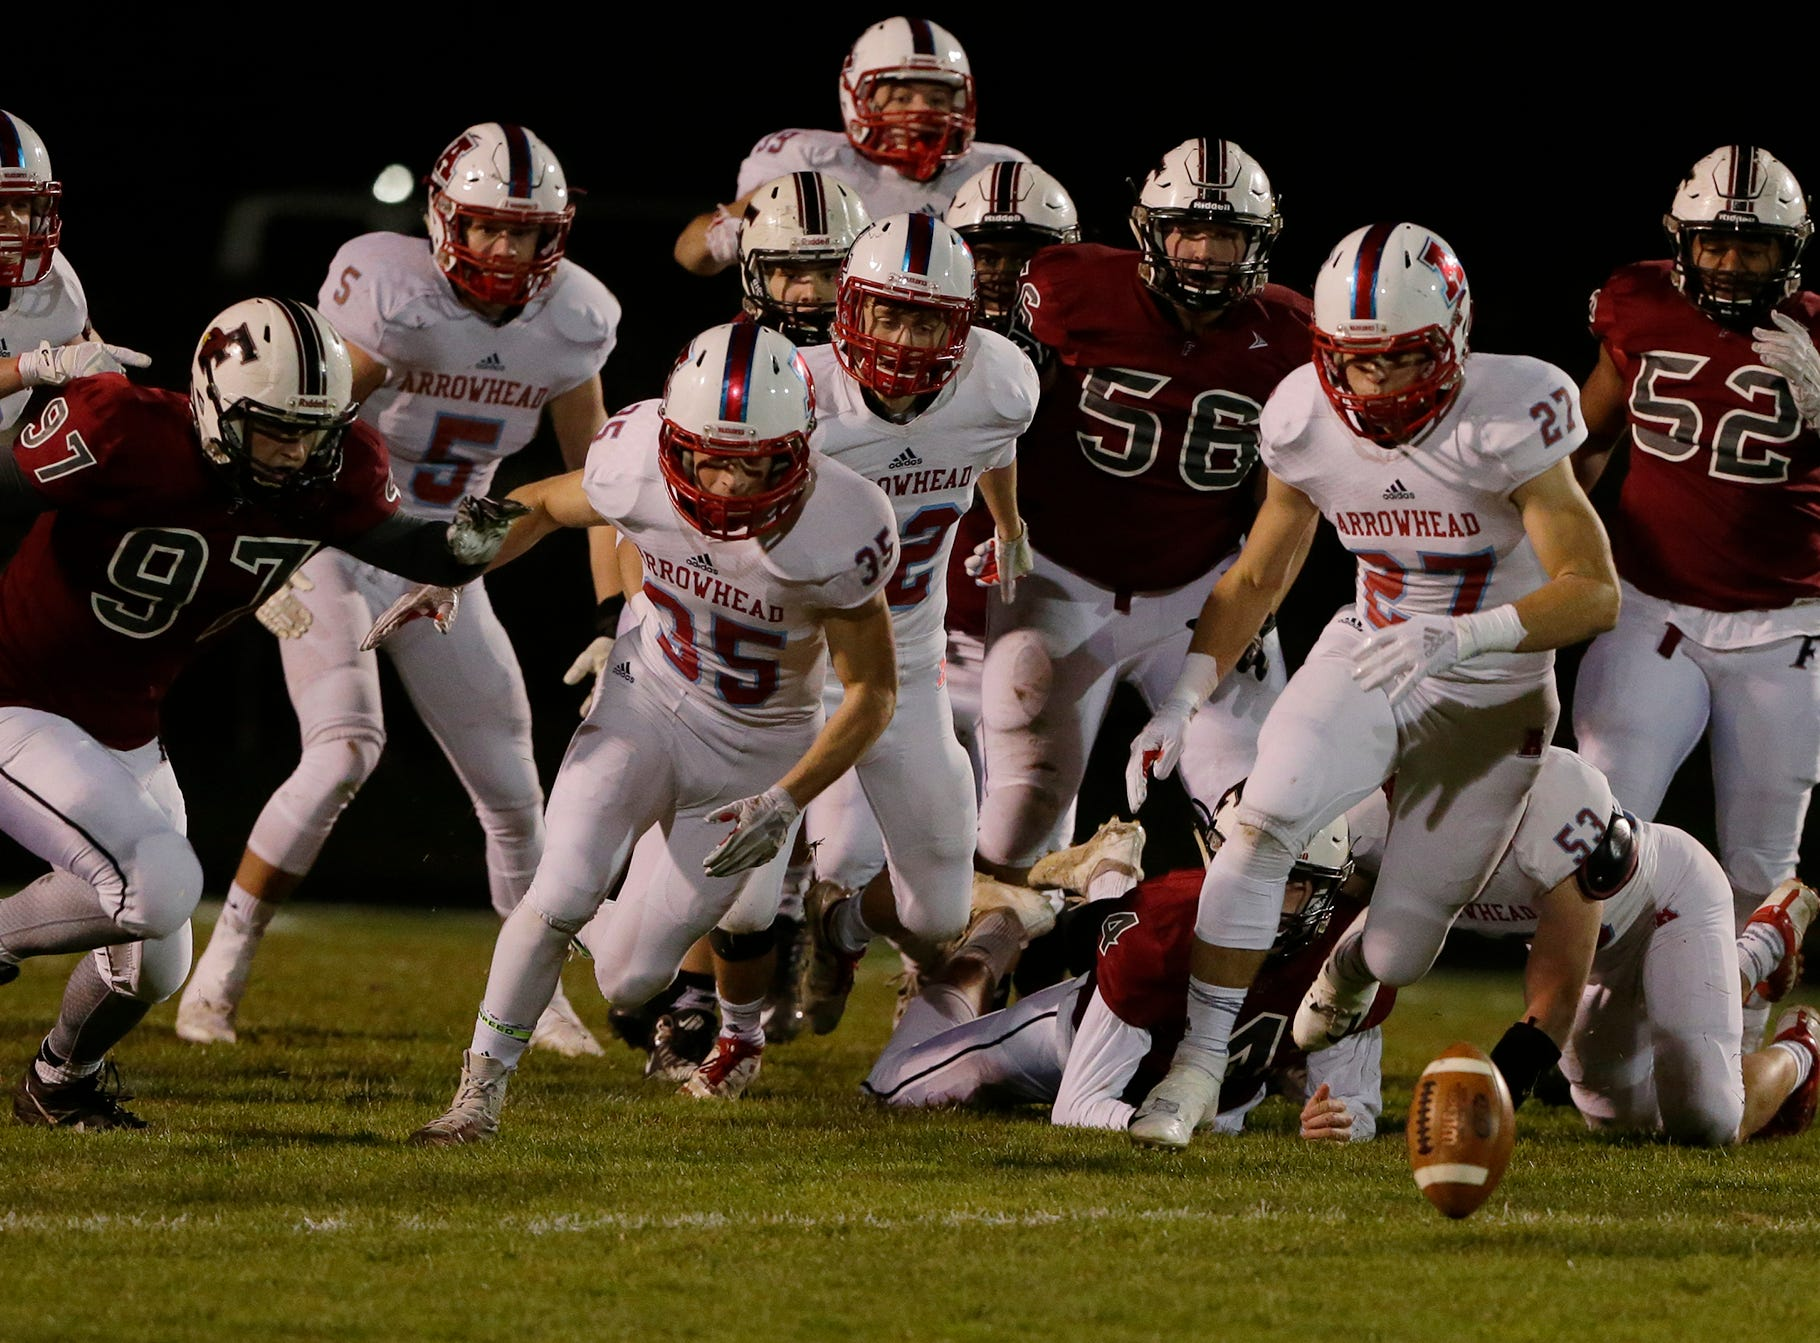 Everyone goes after the Fond du Lac fumble which was recovered by the Cardinals.  Fond du Lac Cardinals played Arrowhead Warhawks in WIAA football playoff sectionals, Friday, Oct. 26, 2018, at Fruth Field in Fond du Lac.    Fond du Lac won 28 - 22.Joe Sienkiewicz/USA Today NETWORK-Wisconsin